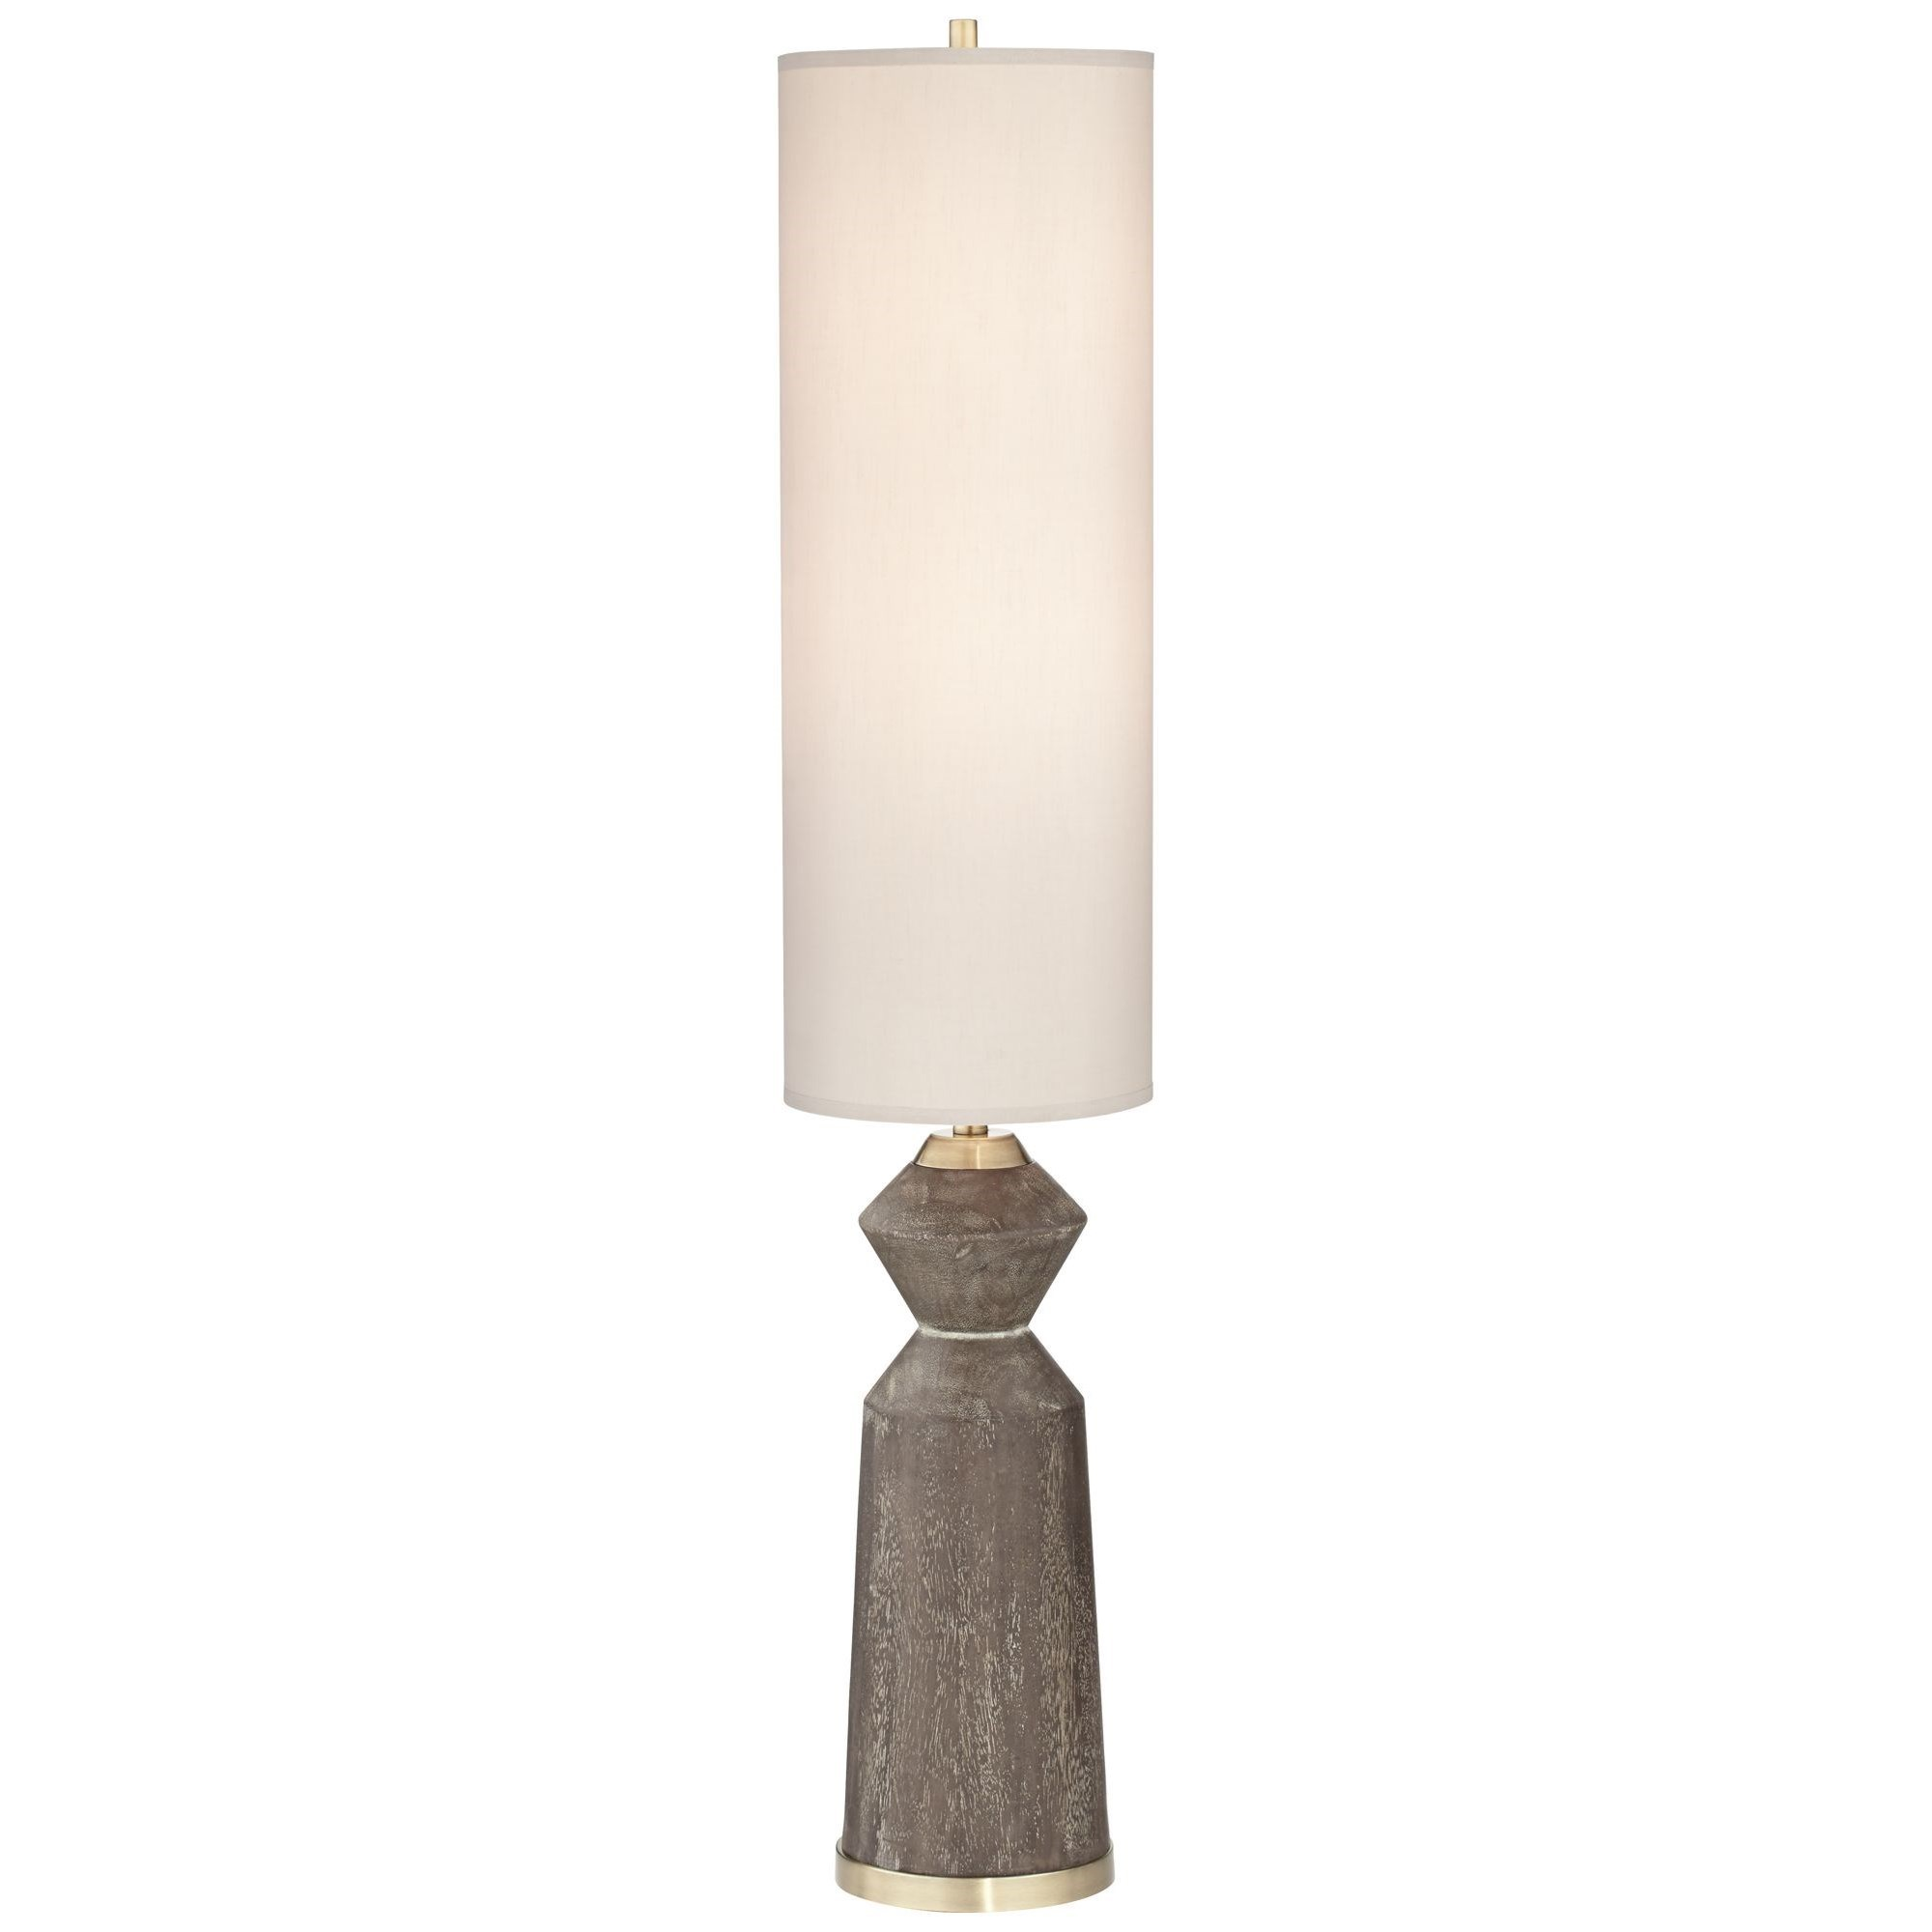 PCL FLOOR LAMPS Column Faux Wood Floor Lamp by PCL LIGHTING at Walker's Furniture